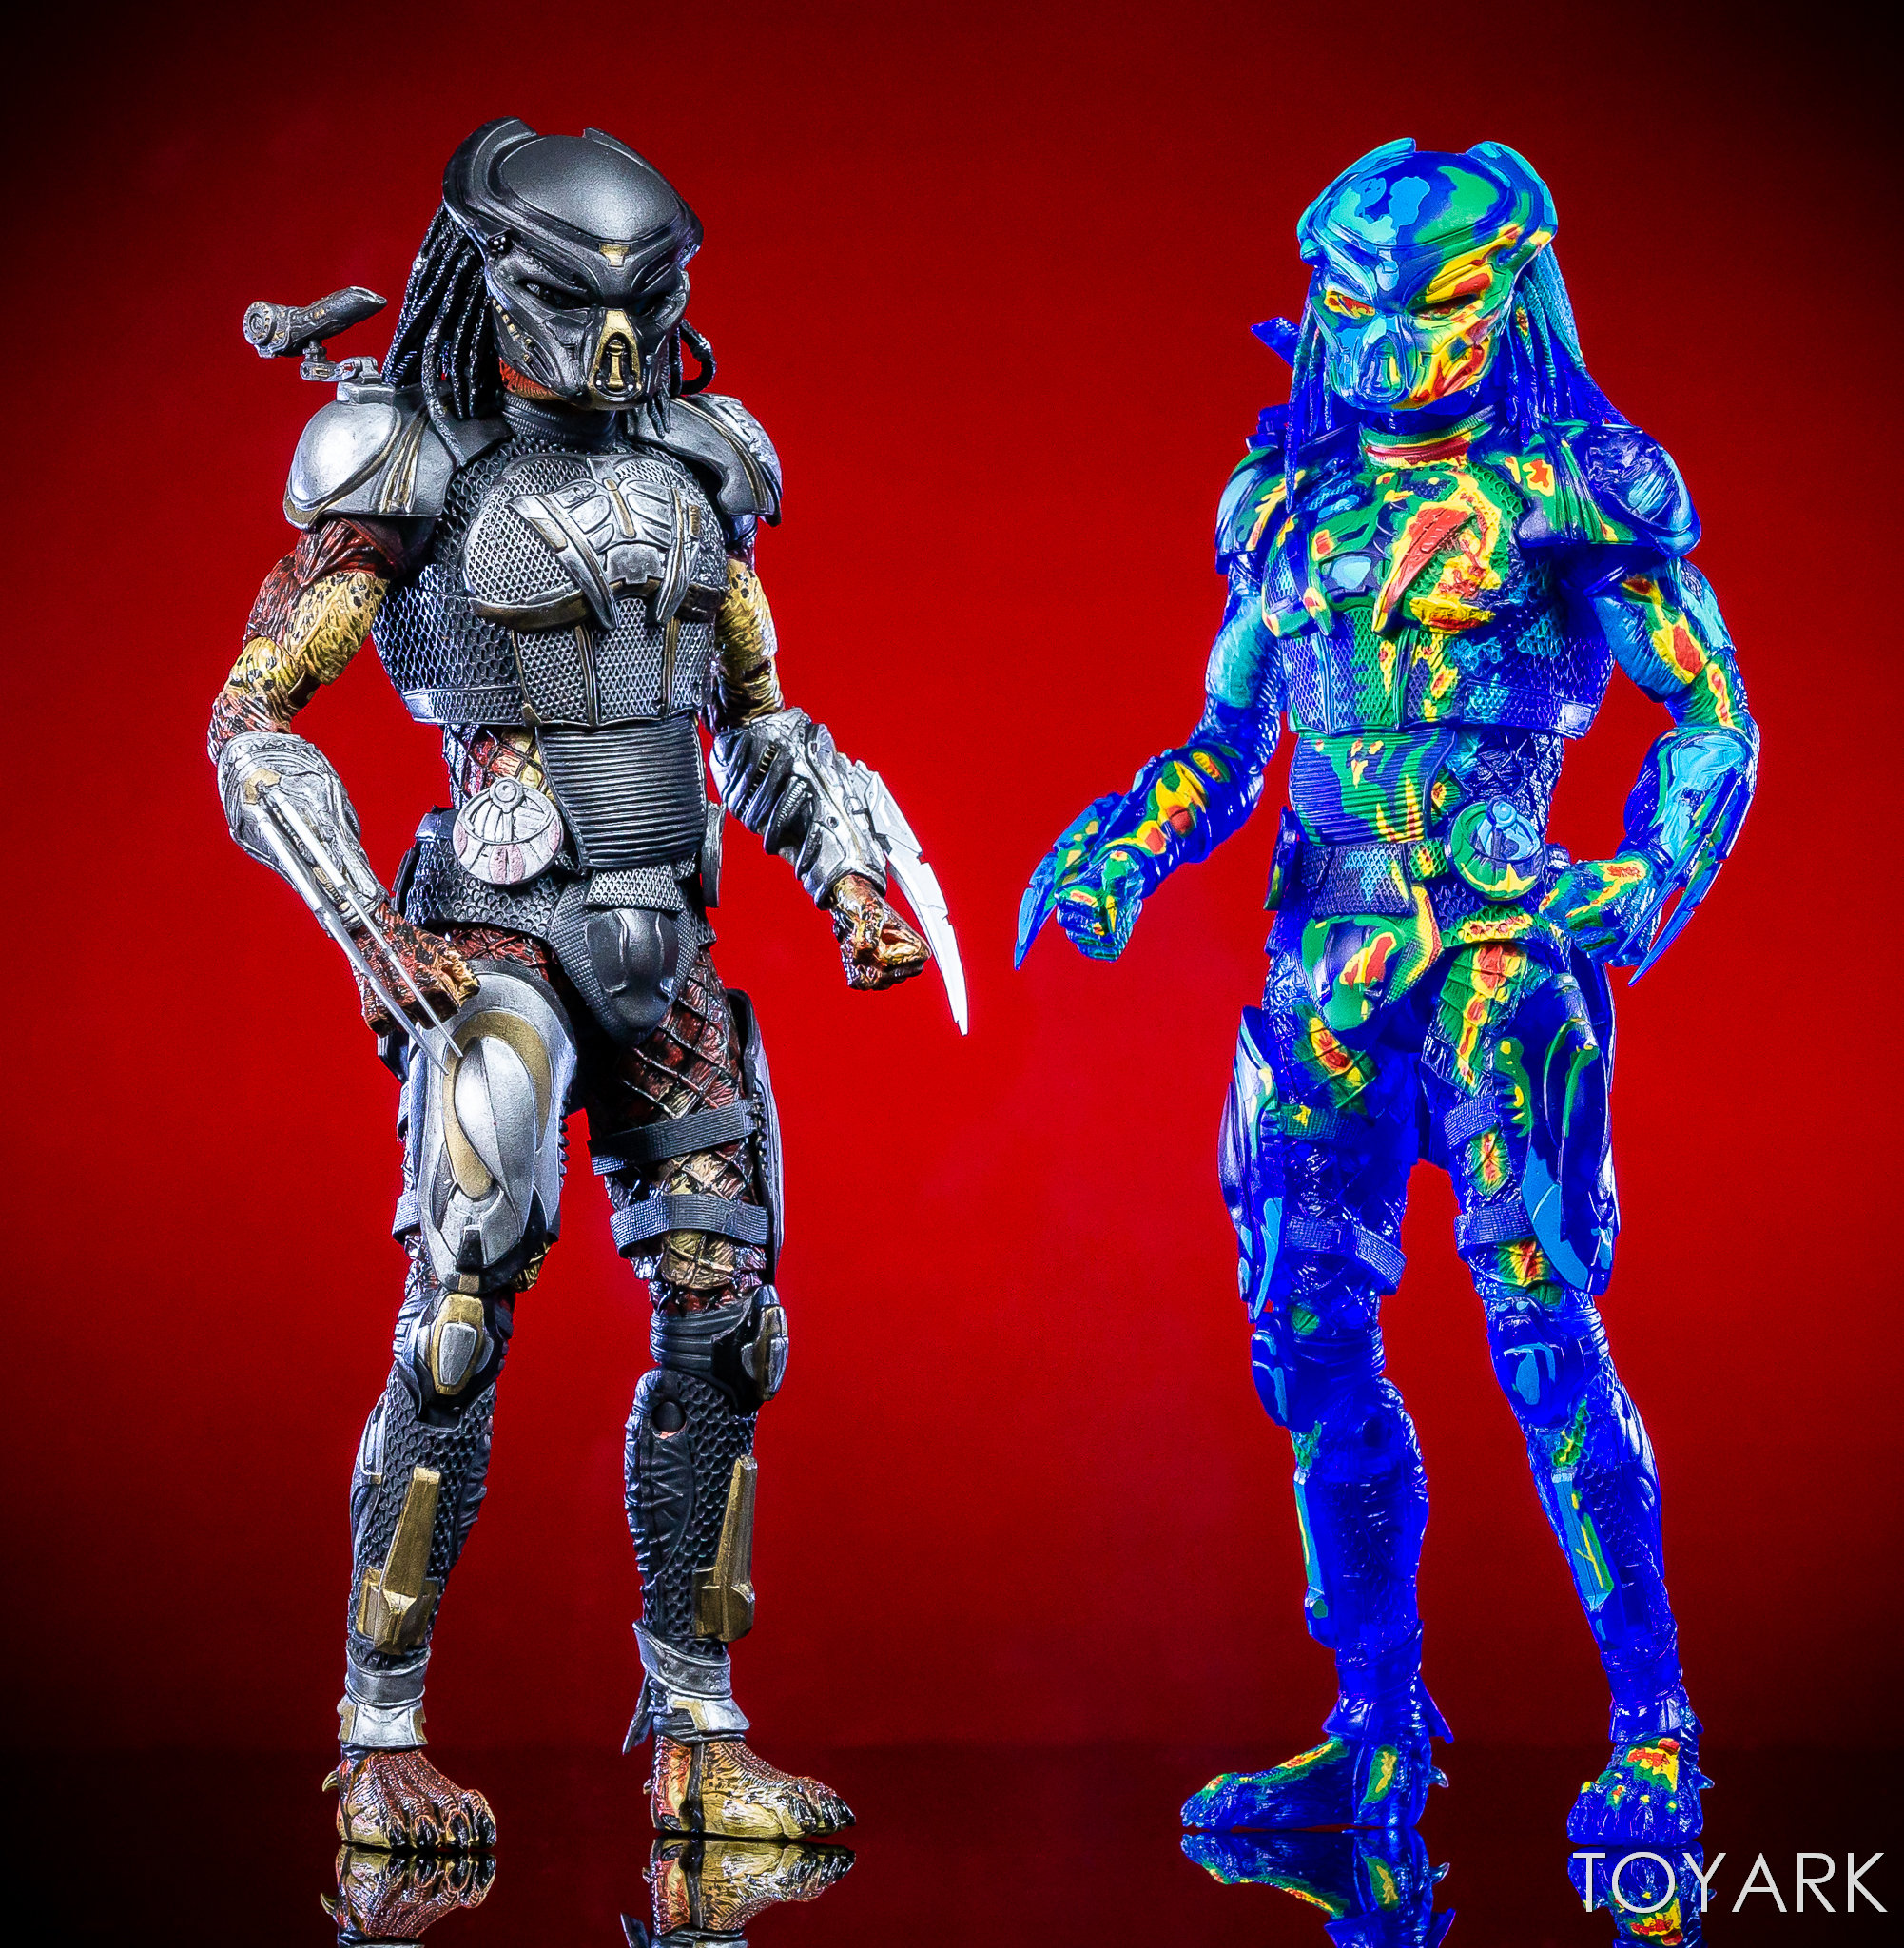 https://news.toyark.com/wp-content/uploads/sites/4/2018/12/NECA-Predator-2018-Thermal-Vision-Predator-016.jpg